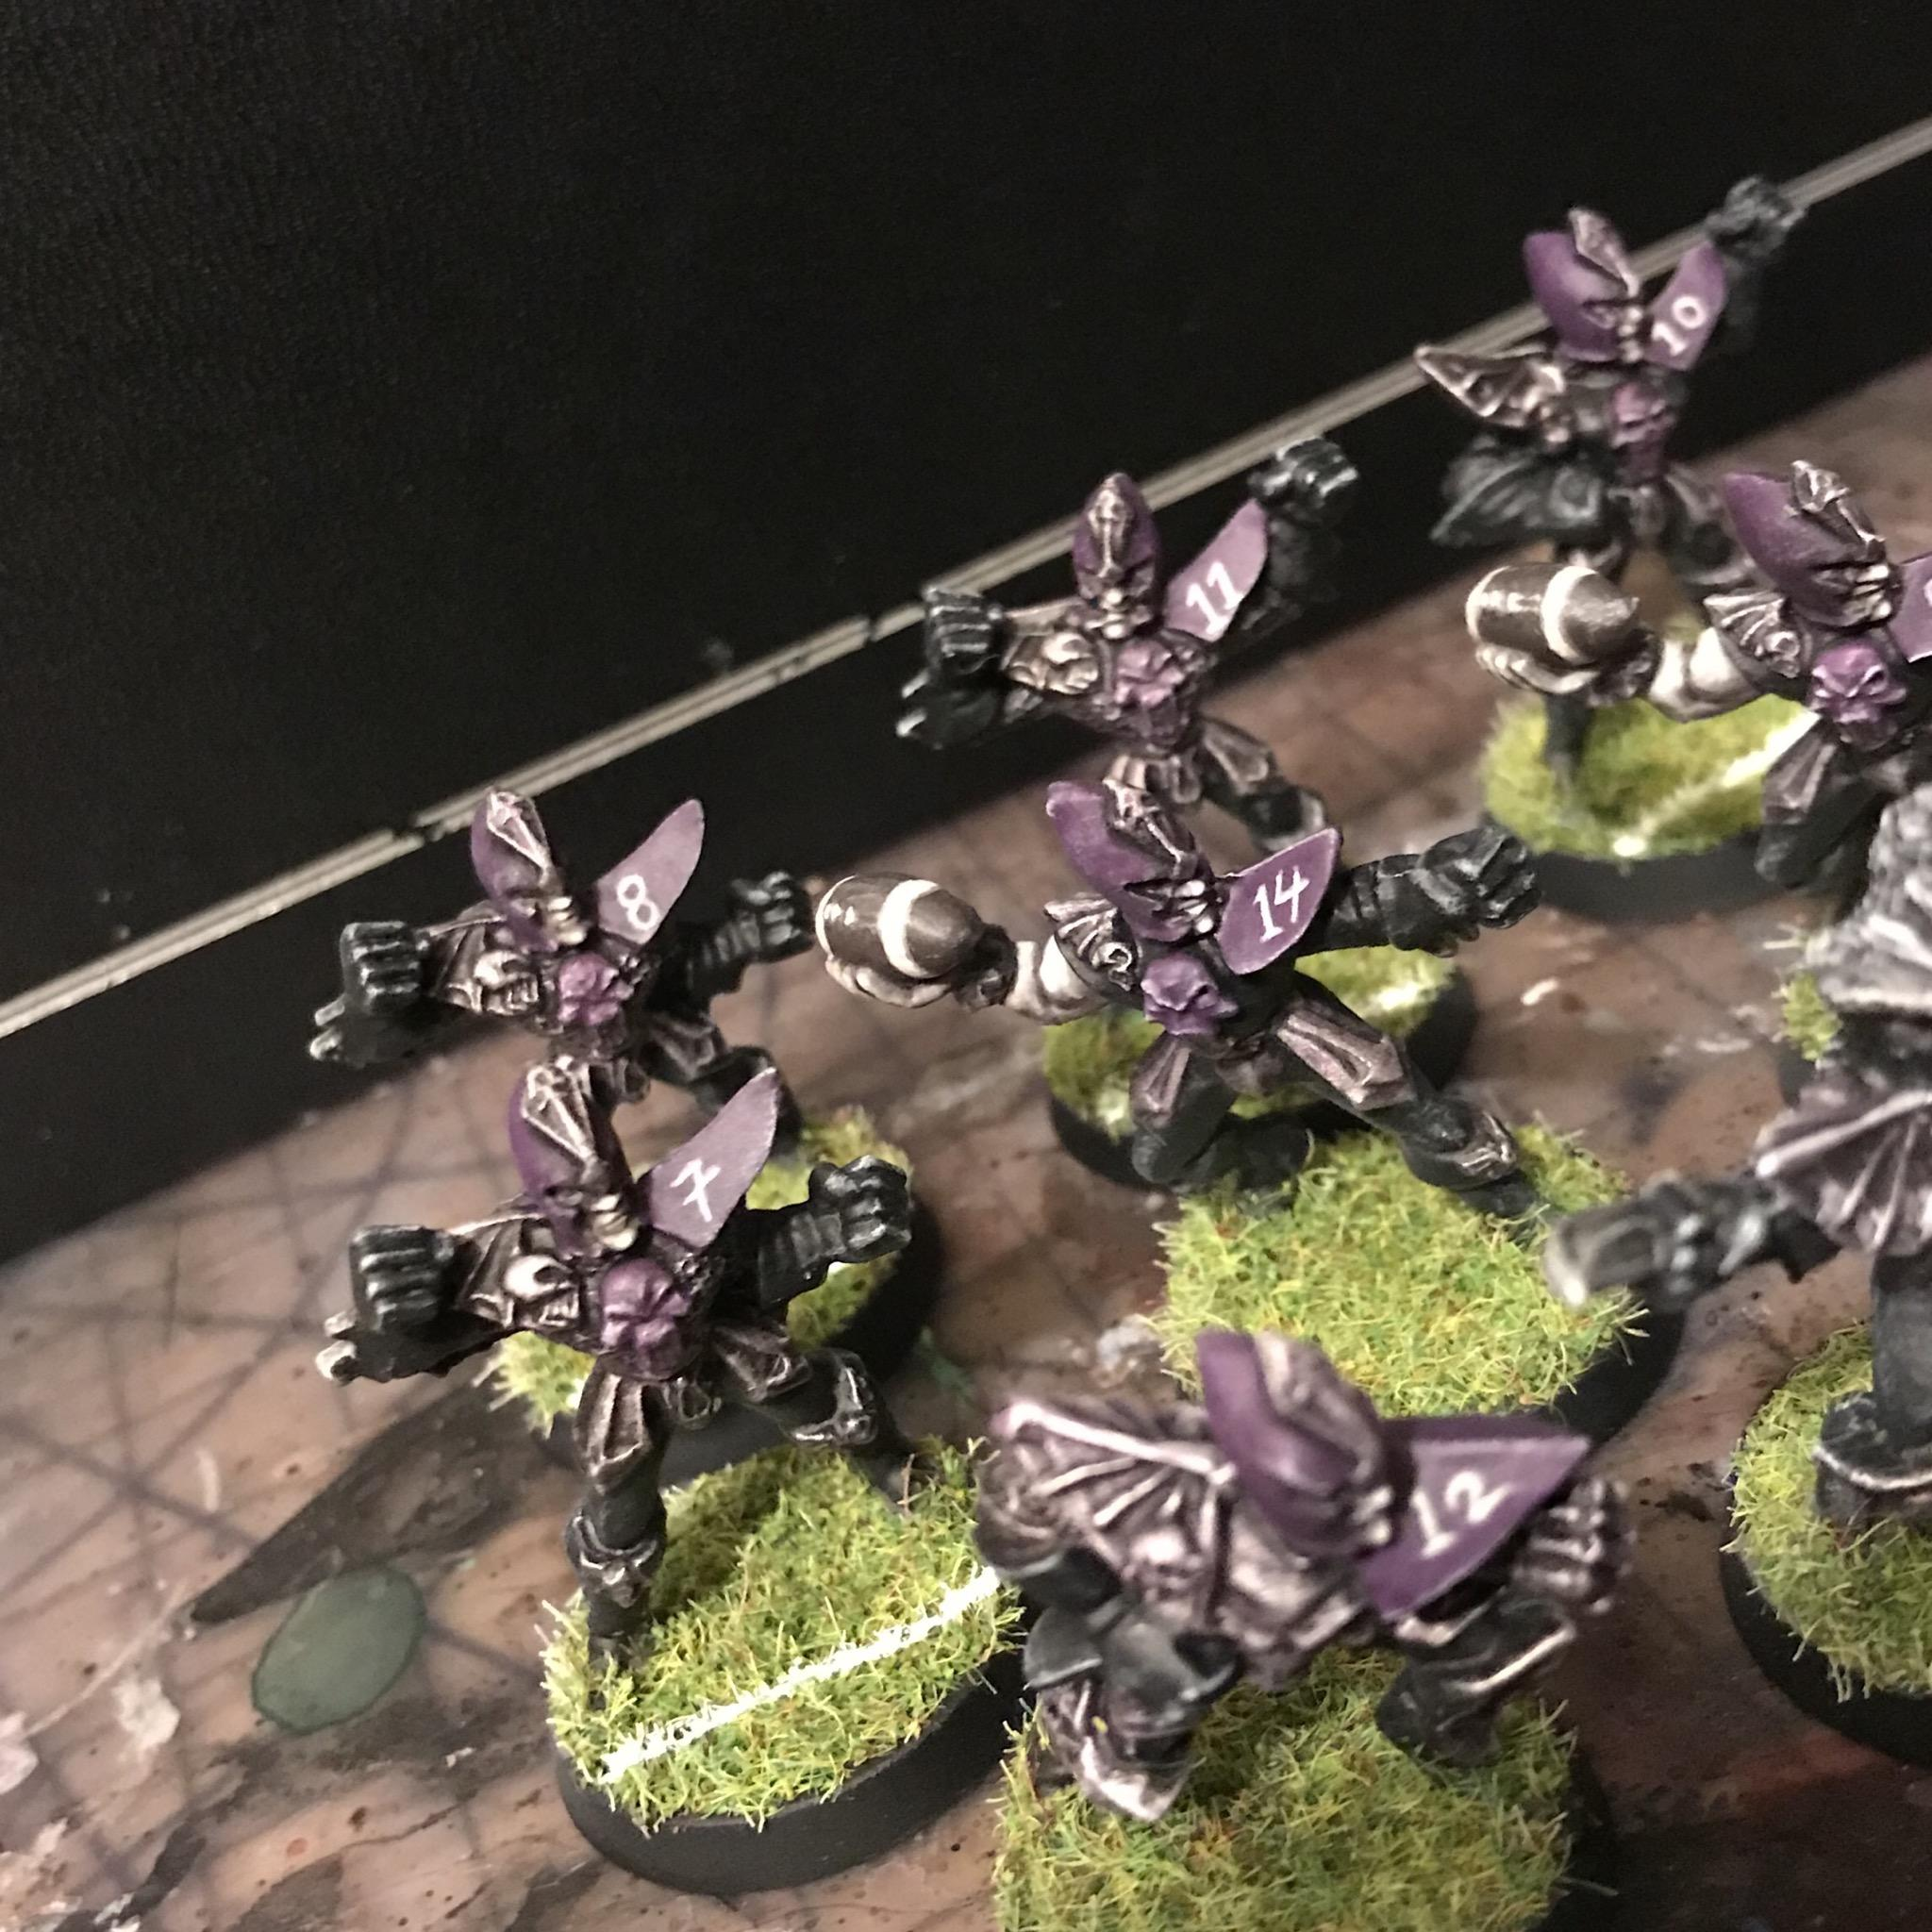 25mm, Aelf, Aelfs, Aelves, Age, Age Of Sigmar, And, Aquatic, Ark, Arrow, Battle, Battles, Bb, Black, Blitzer, Blitzers, Blood, Blood Bowl, Blue, Bow, Bowl, Citadel, City, Cold, Colors, Cowboys, Creature, Creatures, Dark, Dark Elves, Deathzone, Dungeon, Elfs, Elves, End, Evil, Football, Guard, High, Infantry, Khaine, Khaine's, Lineman, Marauders, Mariner, Mariners, Medieval, Metal, Miniatures, Minis, Models, Mordheim, Mortal, Naggaroth, Nightmares, Of, Old, Olde, Oldhammer, Painted, Play, Raiders, Raiding, Realms, Role, Runner, Sailing, Sailor, Sails, Sea, Sea Elves, Sigmar, Skirmish, Soldiers, Space Marines, Spear, Sword, The, Times, Vibrant, Warhammer Fantasy, Whf, Whfbrp, Witch, Witches, Woodland, World, Worlde